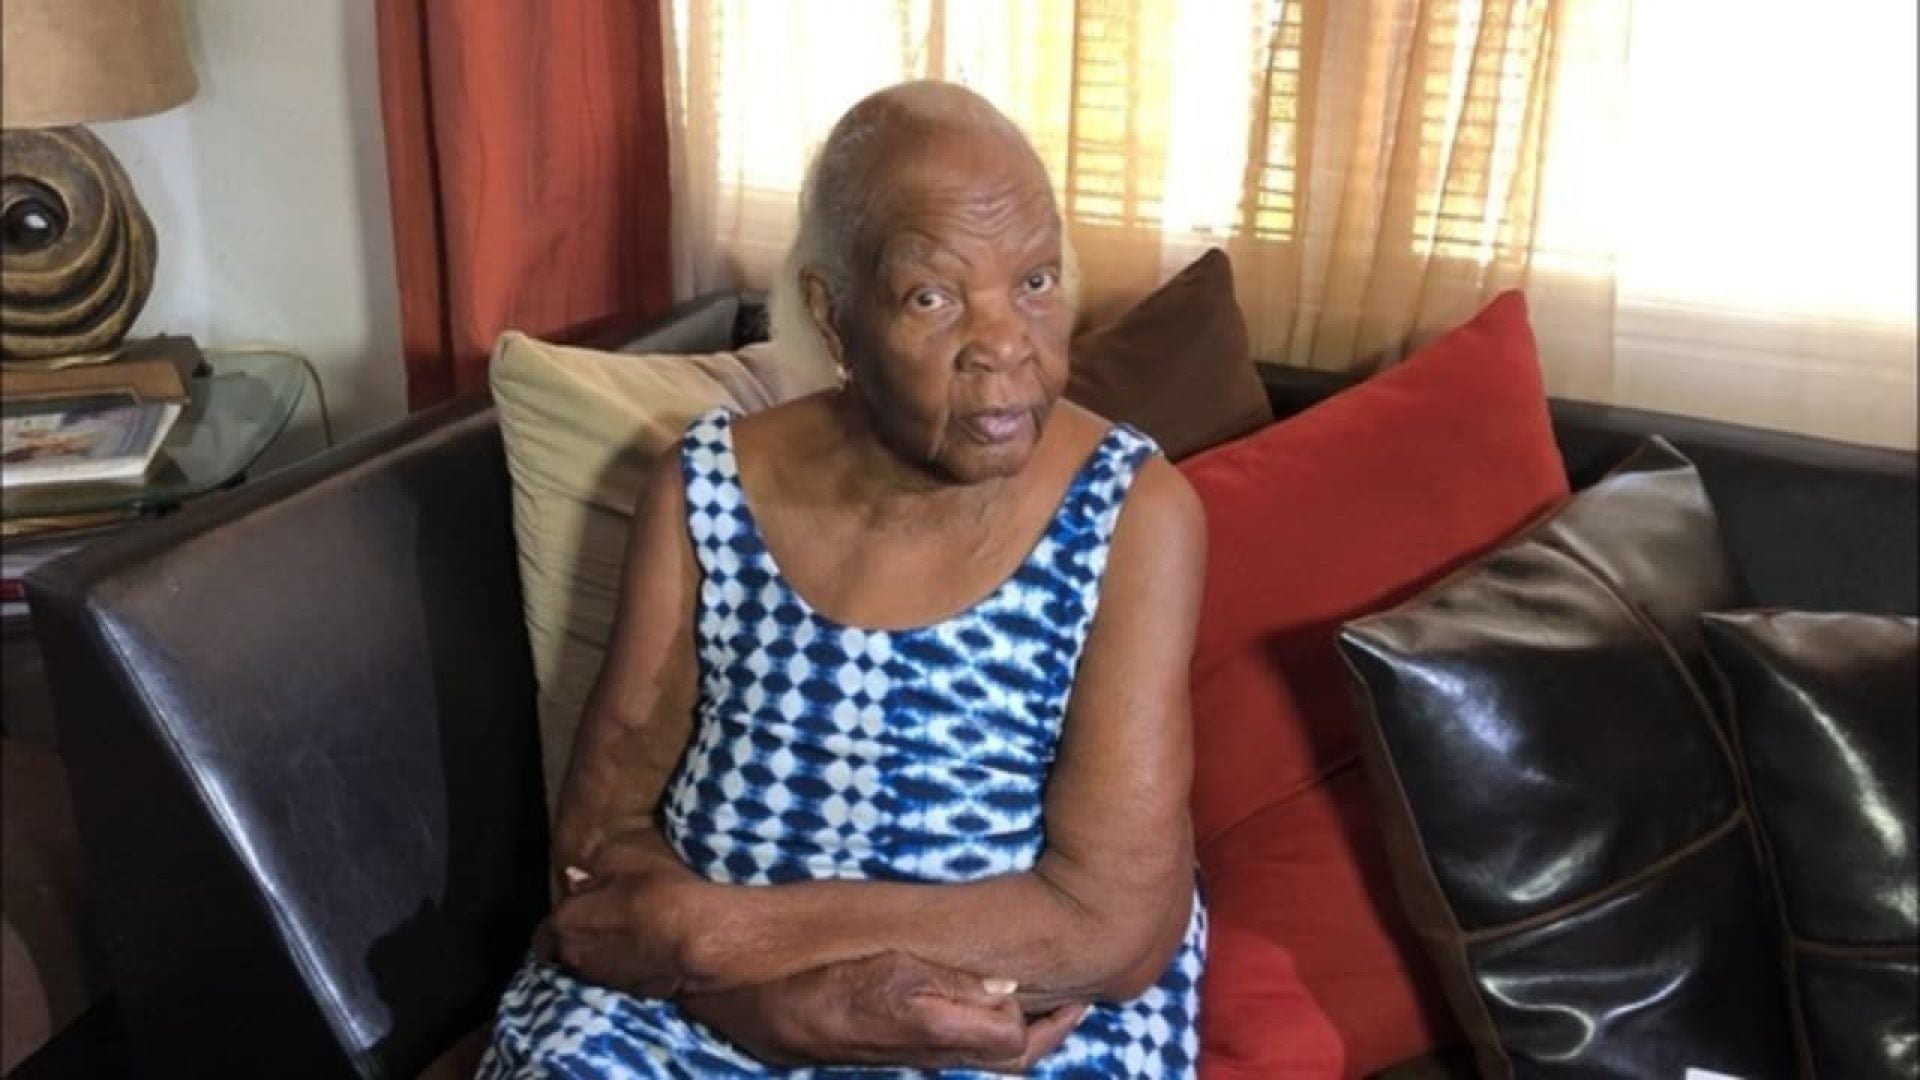 The Government Is Withholding This 84-Year-Old Woman's Social Security, Claiming She Owes Thousands For College